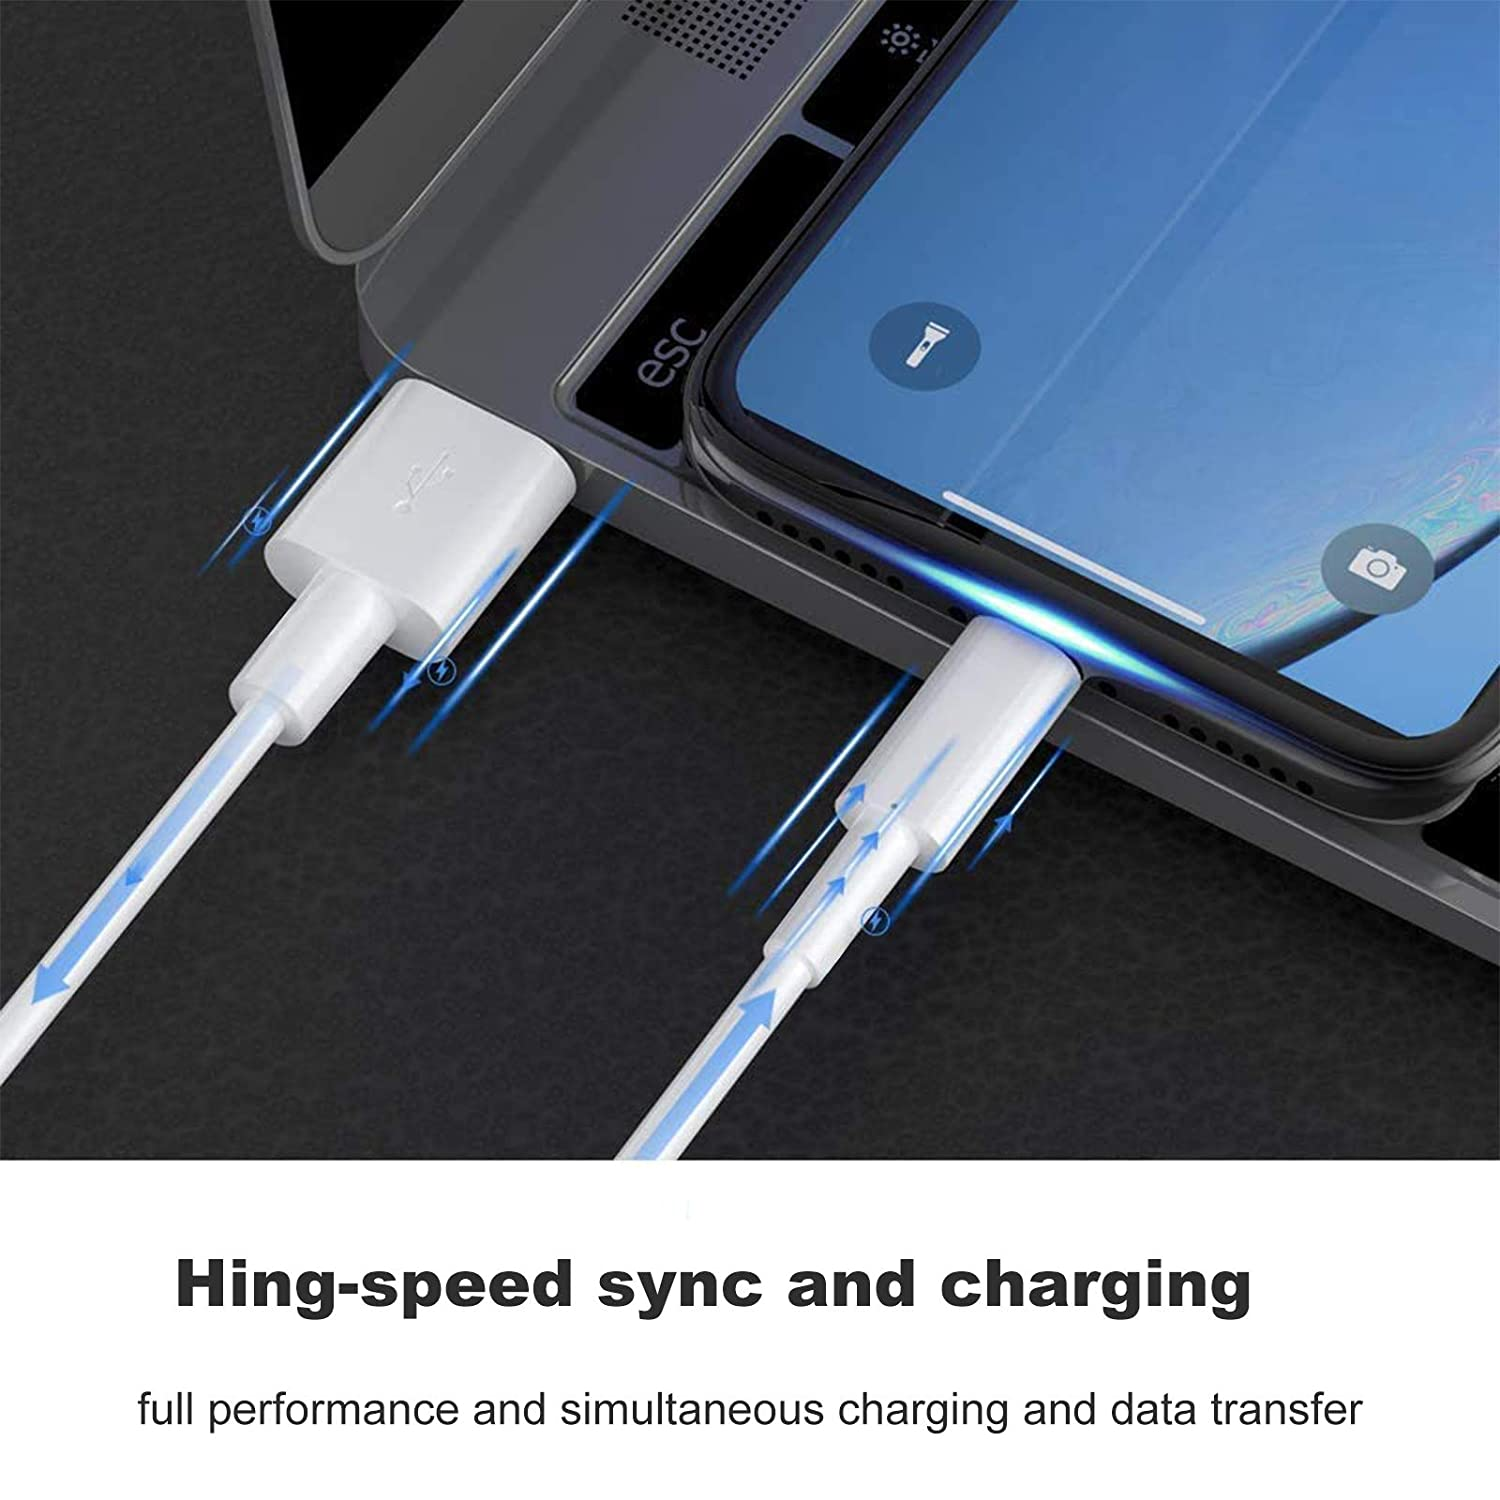 iPhone Charger cables 10FT*5PACK High Speed /&Data Syncs Cord Compatible with iPhone 12//11 Pro Max//Xs//X//XR//8//7//6s//6//SE//Pad//Pod More MBYY MFi Certified to USB Cable